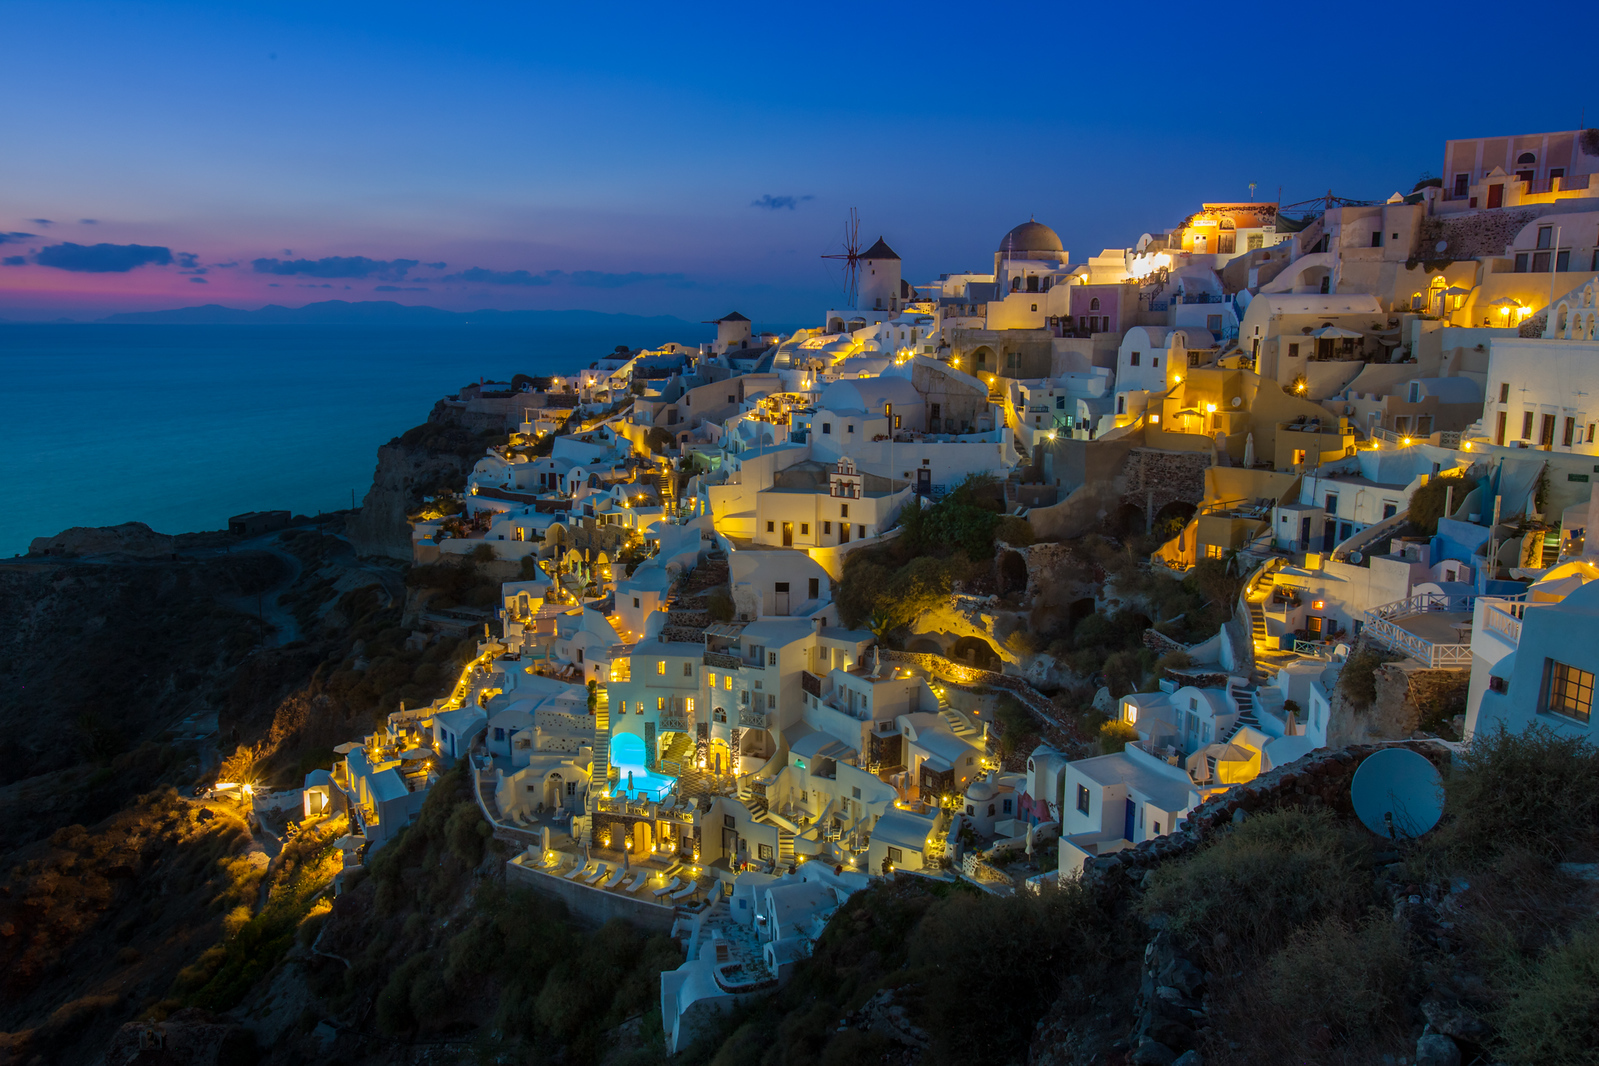 The city of Oia at Sunset on the island of Santorini.